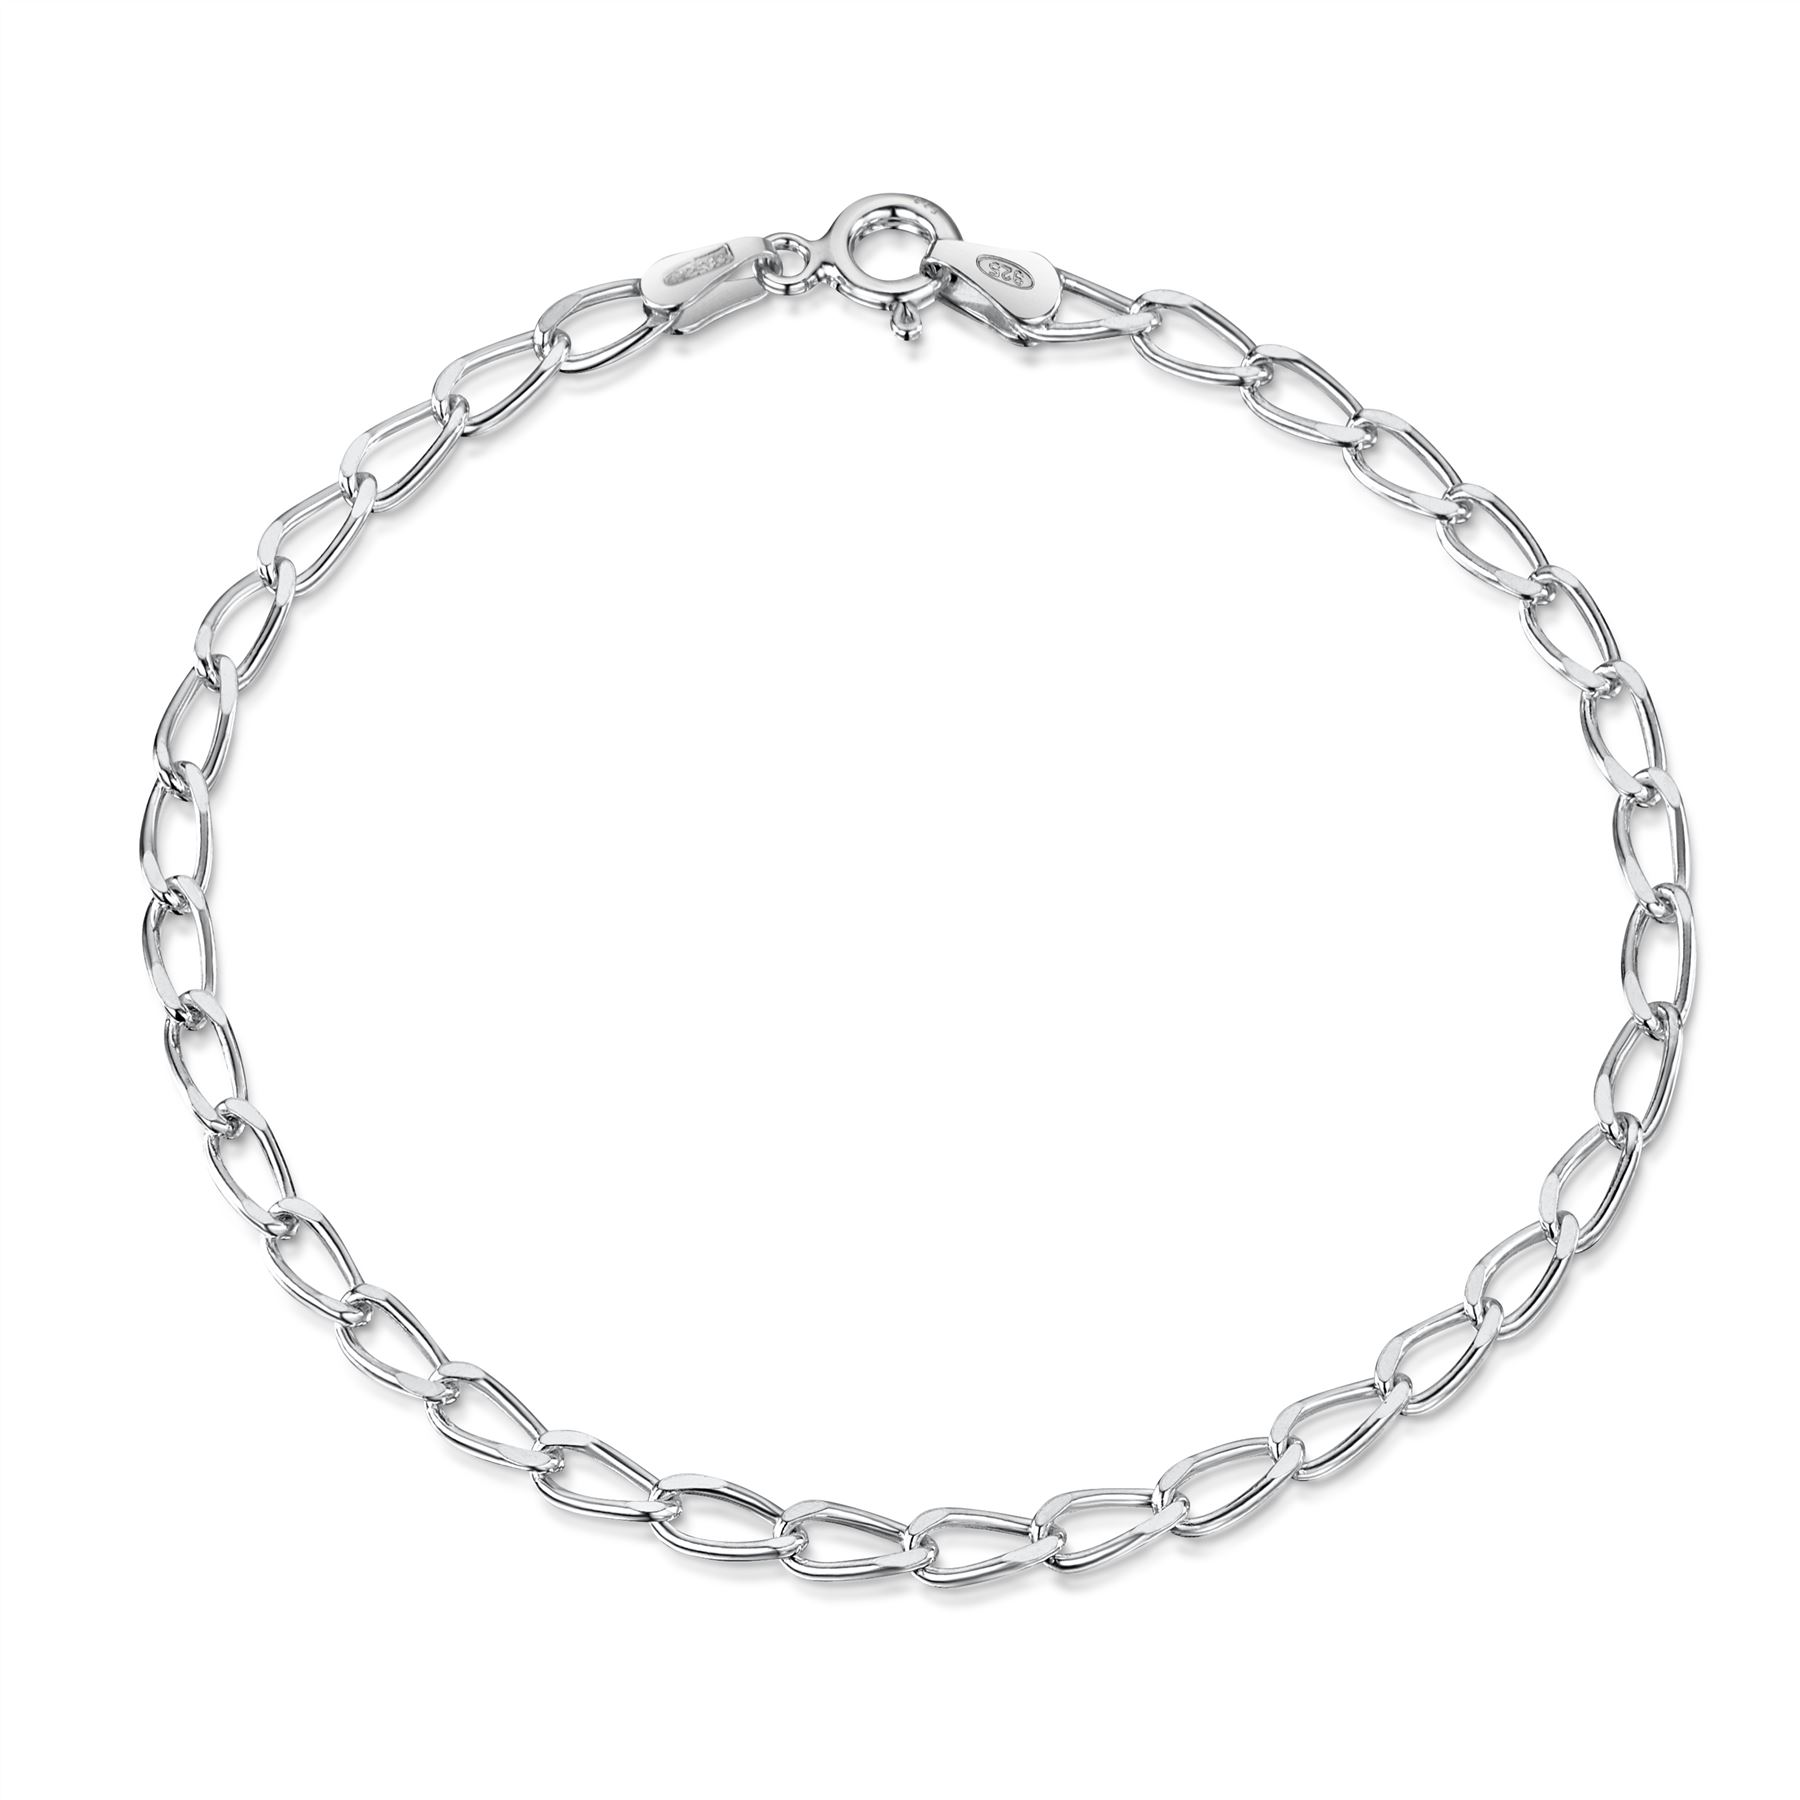 Amberta-Jewelry-Genuine-925-Sterling-Silver-Bracelet-Bangle-Chain-Made-in-Italy thumbnail 72